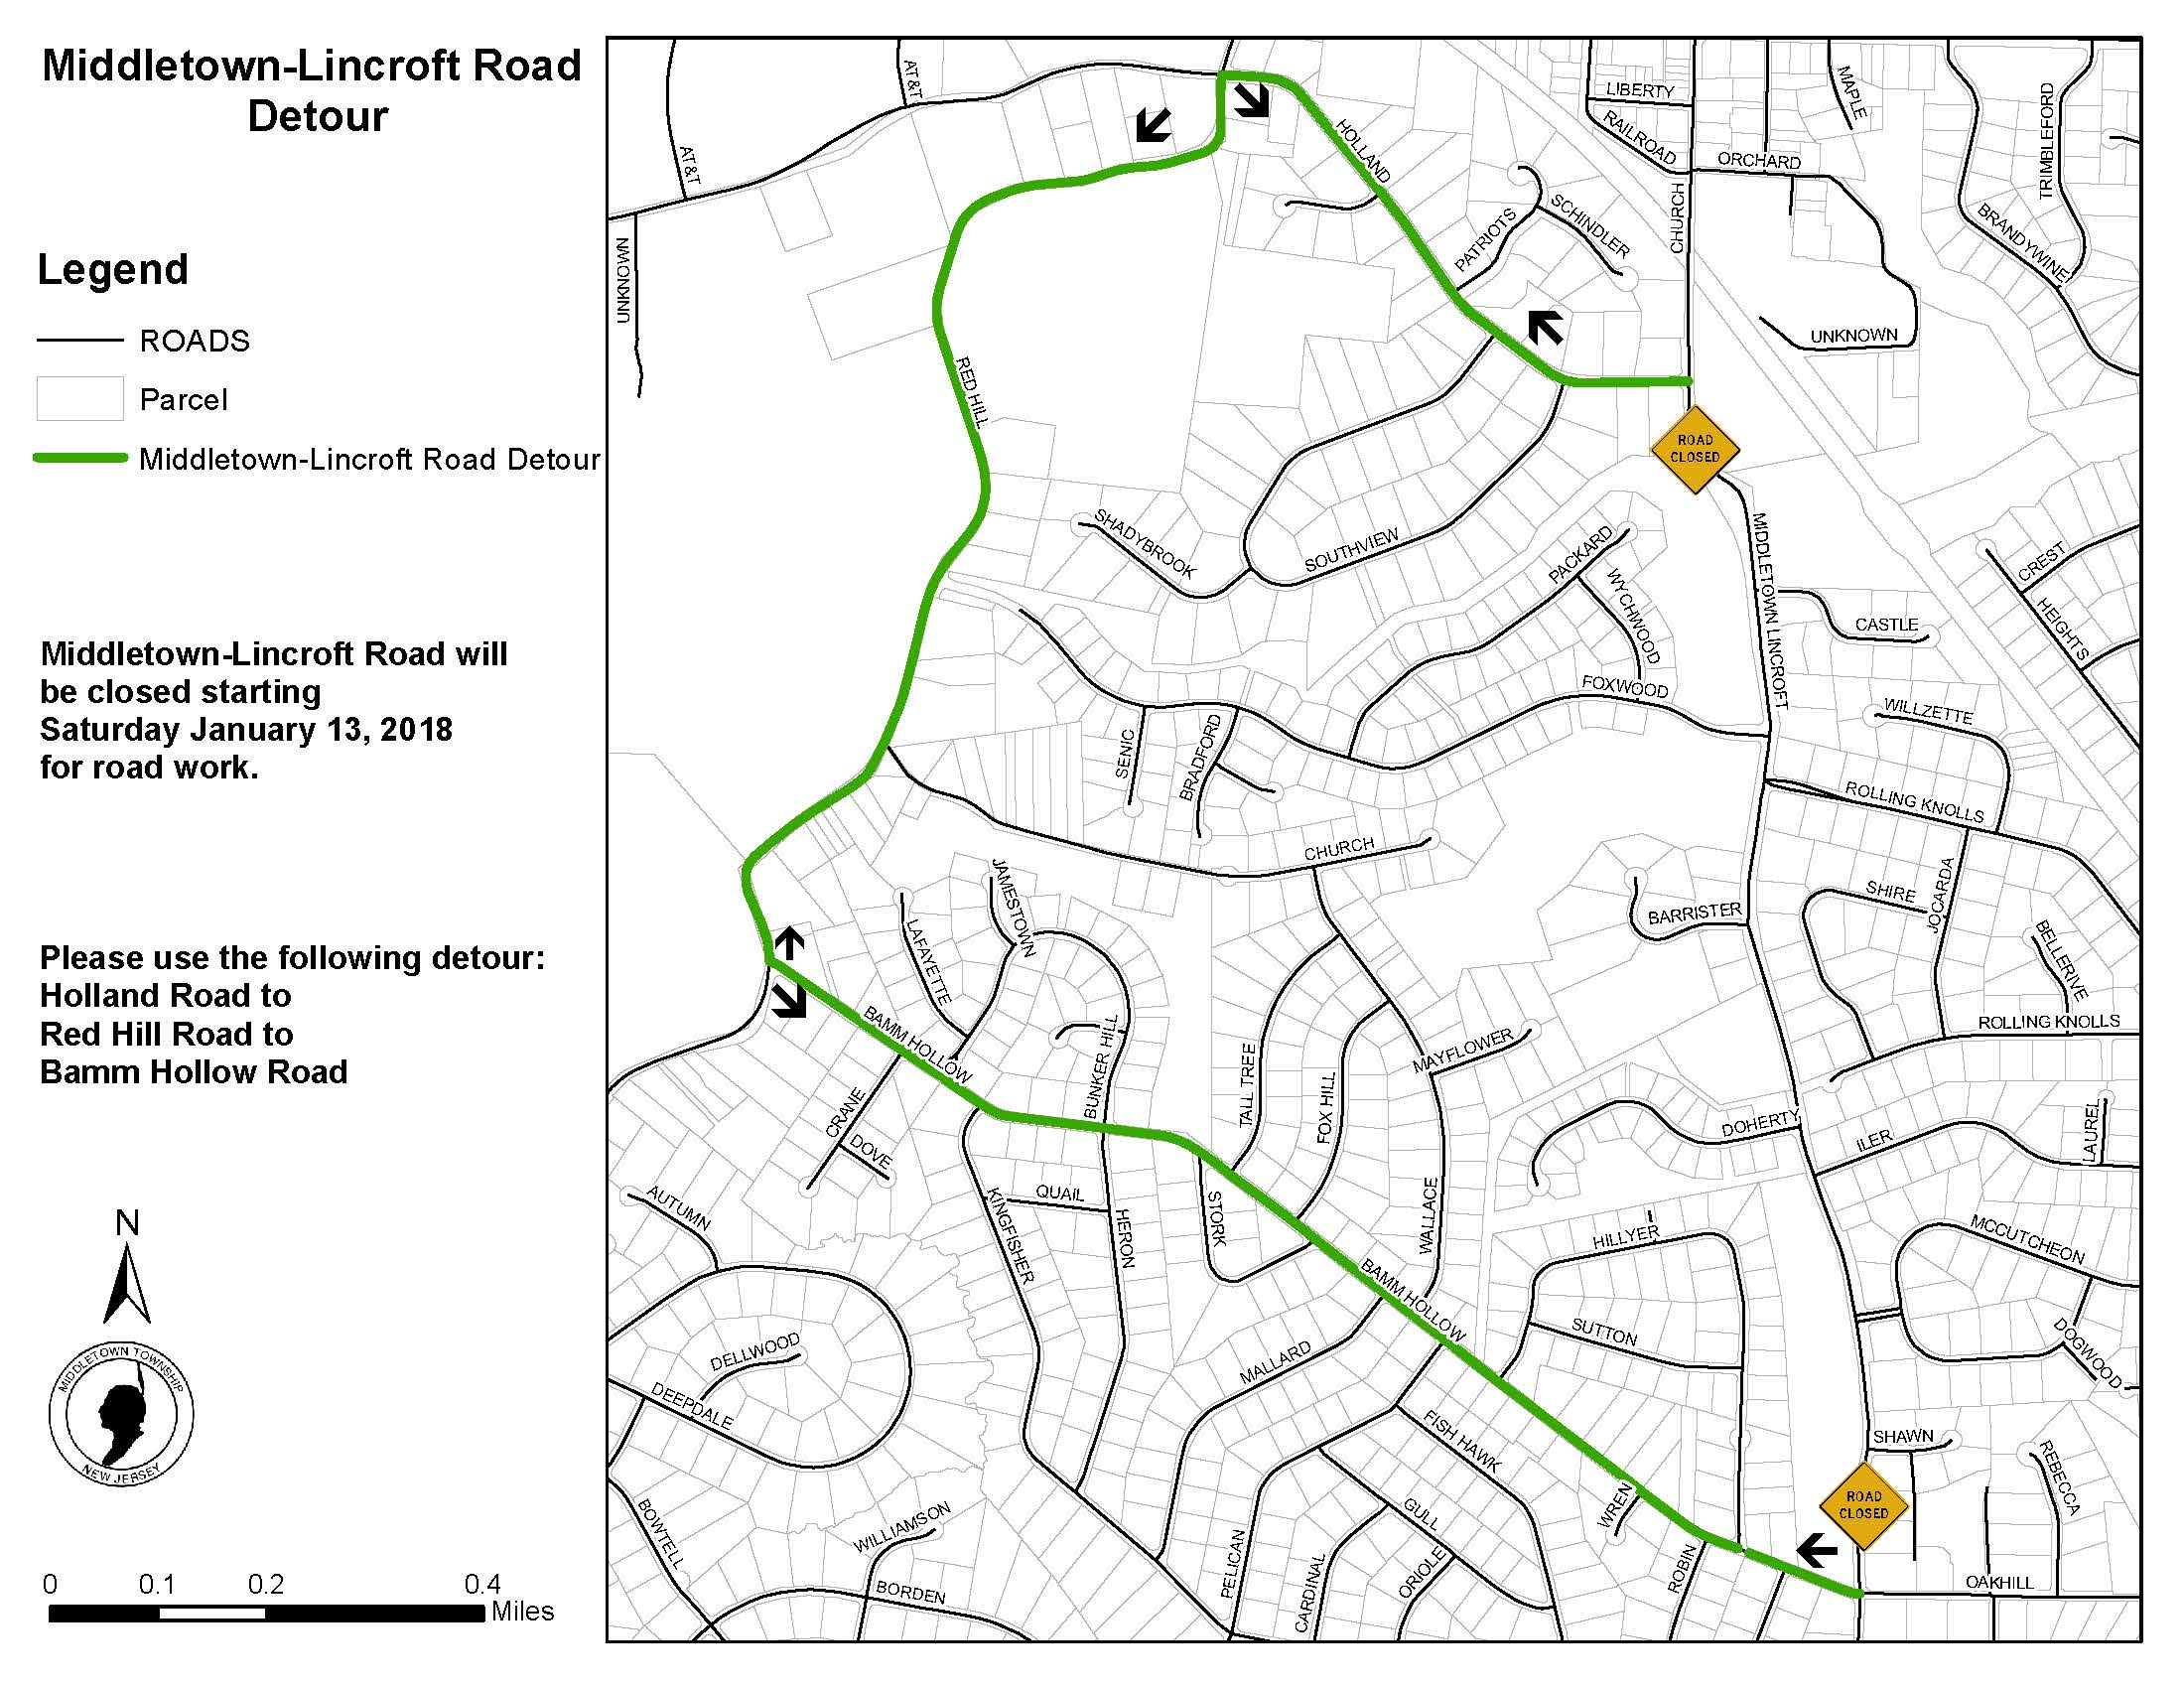 Middletown-Lincroft Road Detour 011418